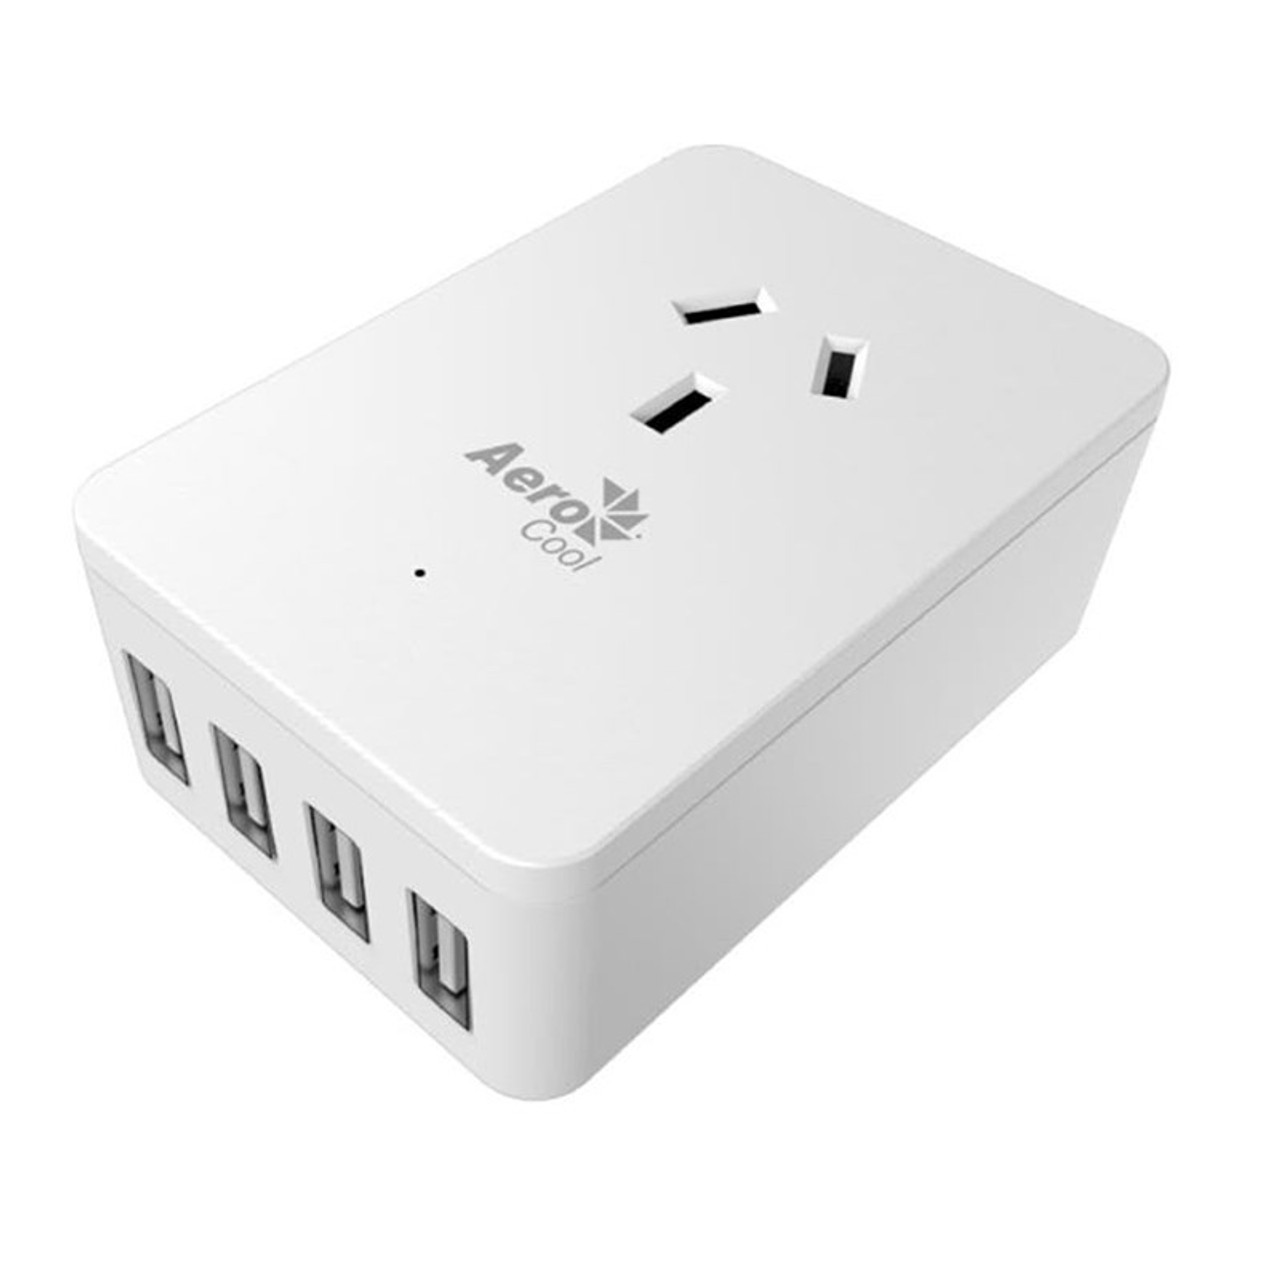 Image for Aerocool ASA-ST1A4U2 WH Smart Charge 1 AC and 4 Port USB Fast Charge CX Computer Superstore